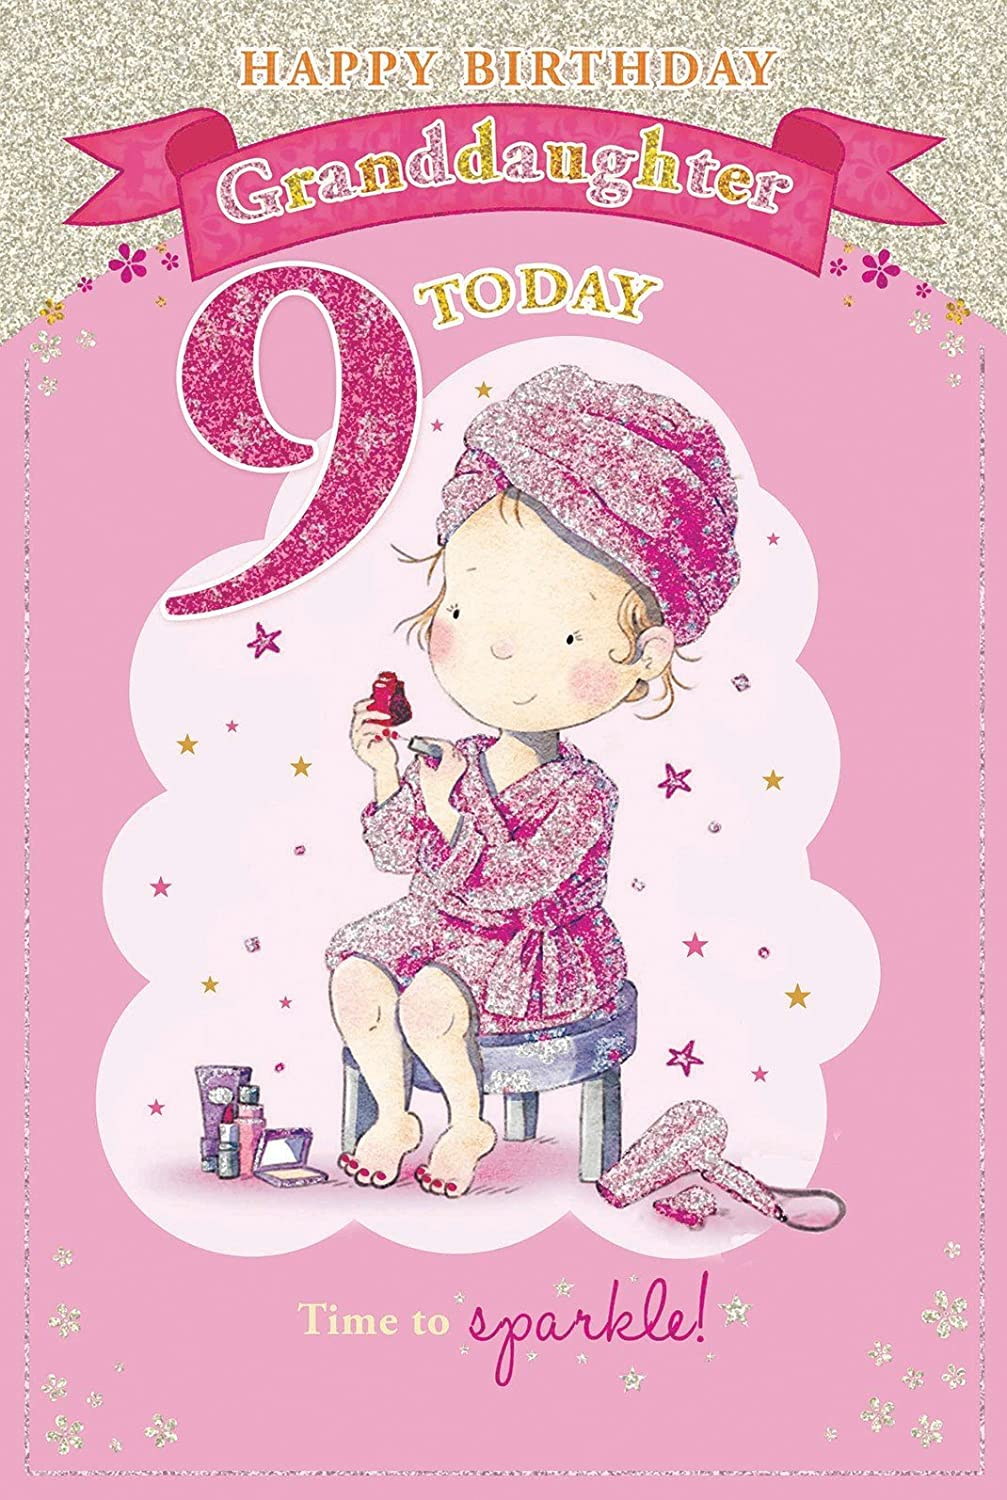 For A Special Granddaughter on Your 11th birthday card 7329 CG – 11th Birthday Cards